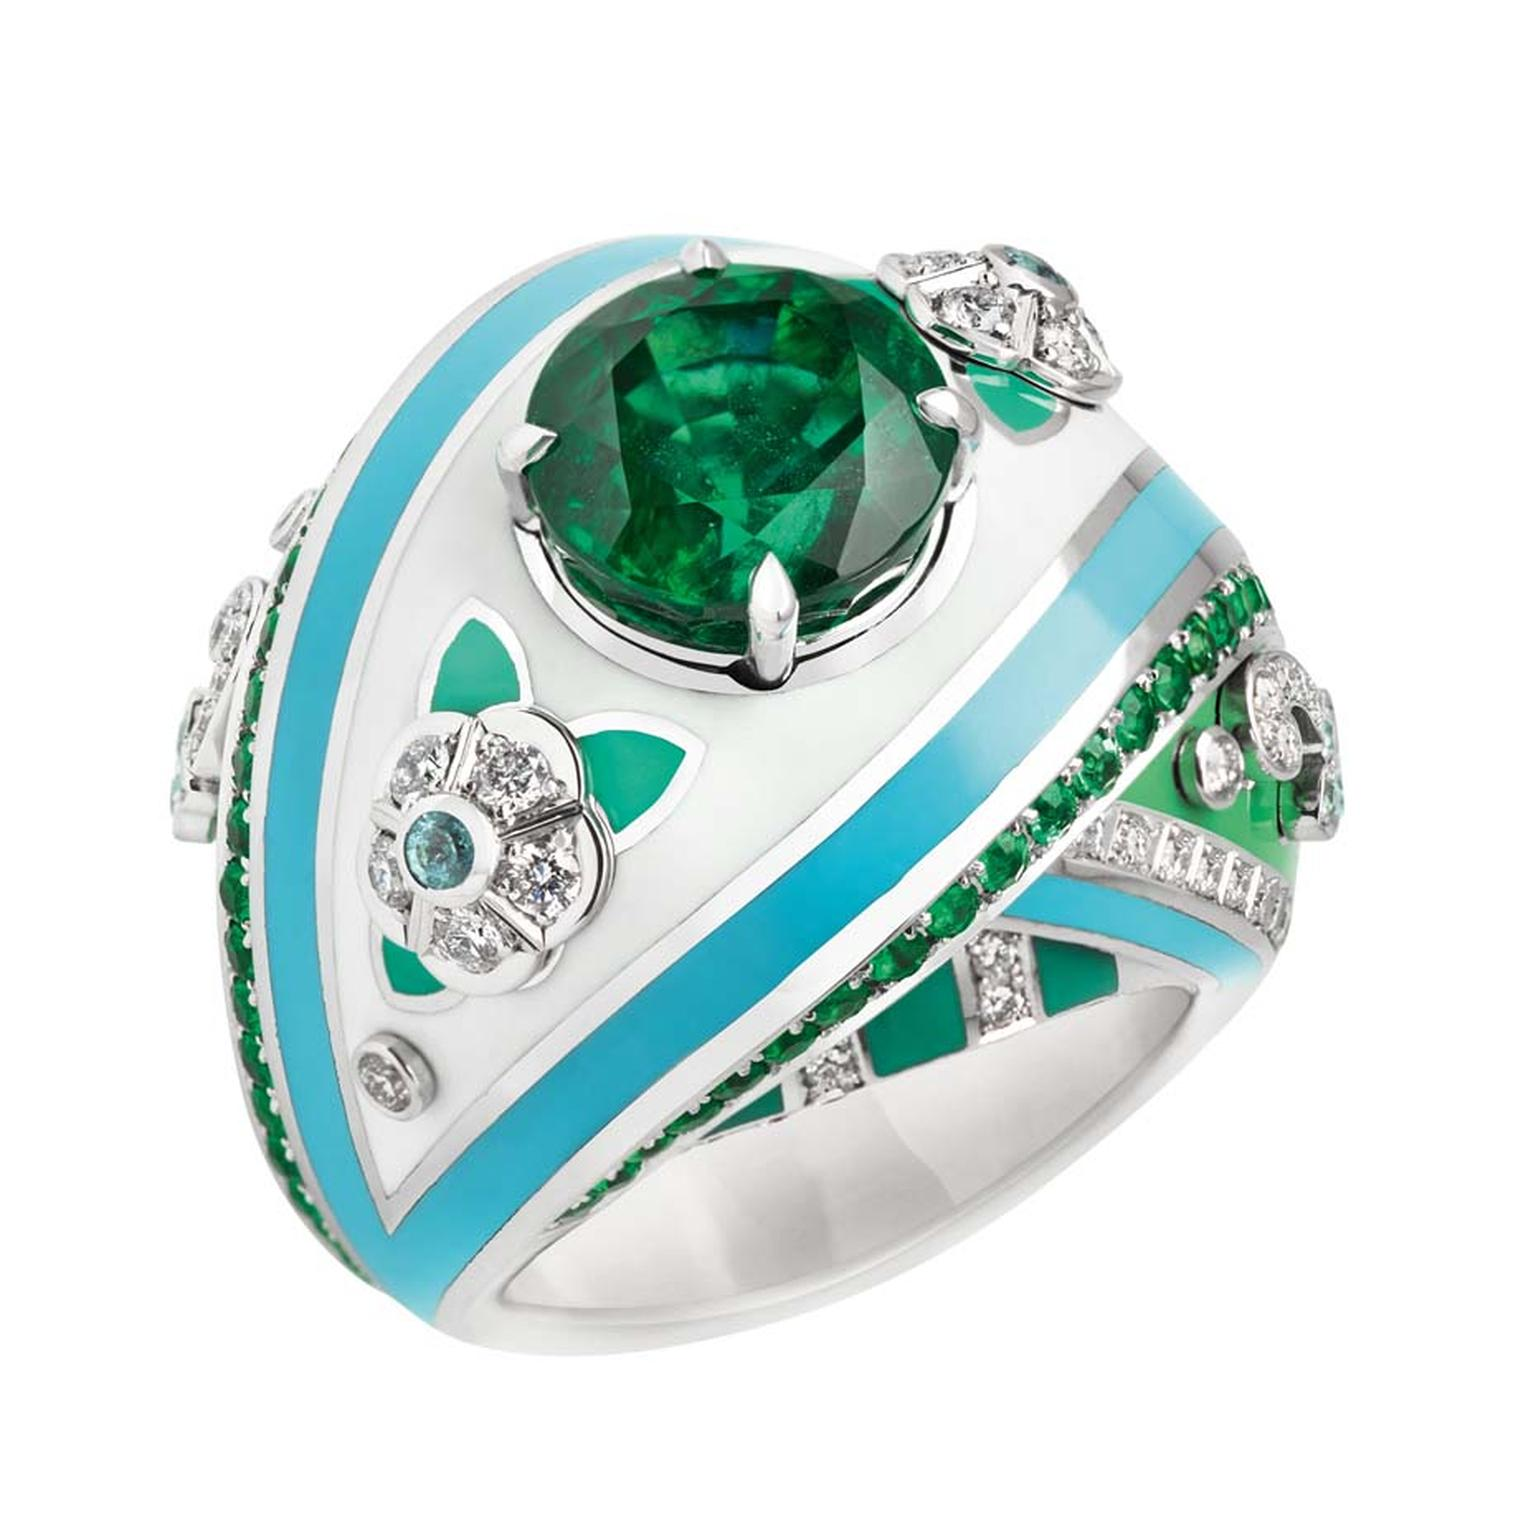 Fabergé ring from the Summer in Provence high jewellery collection, set with emeralds and diamonds and decorated with enamel.